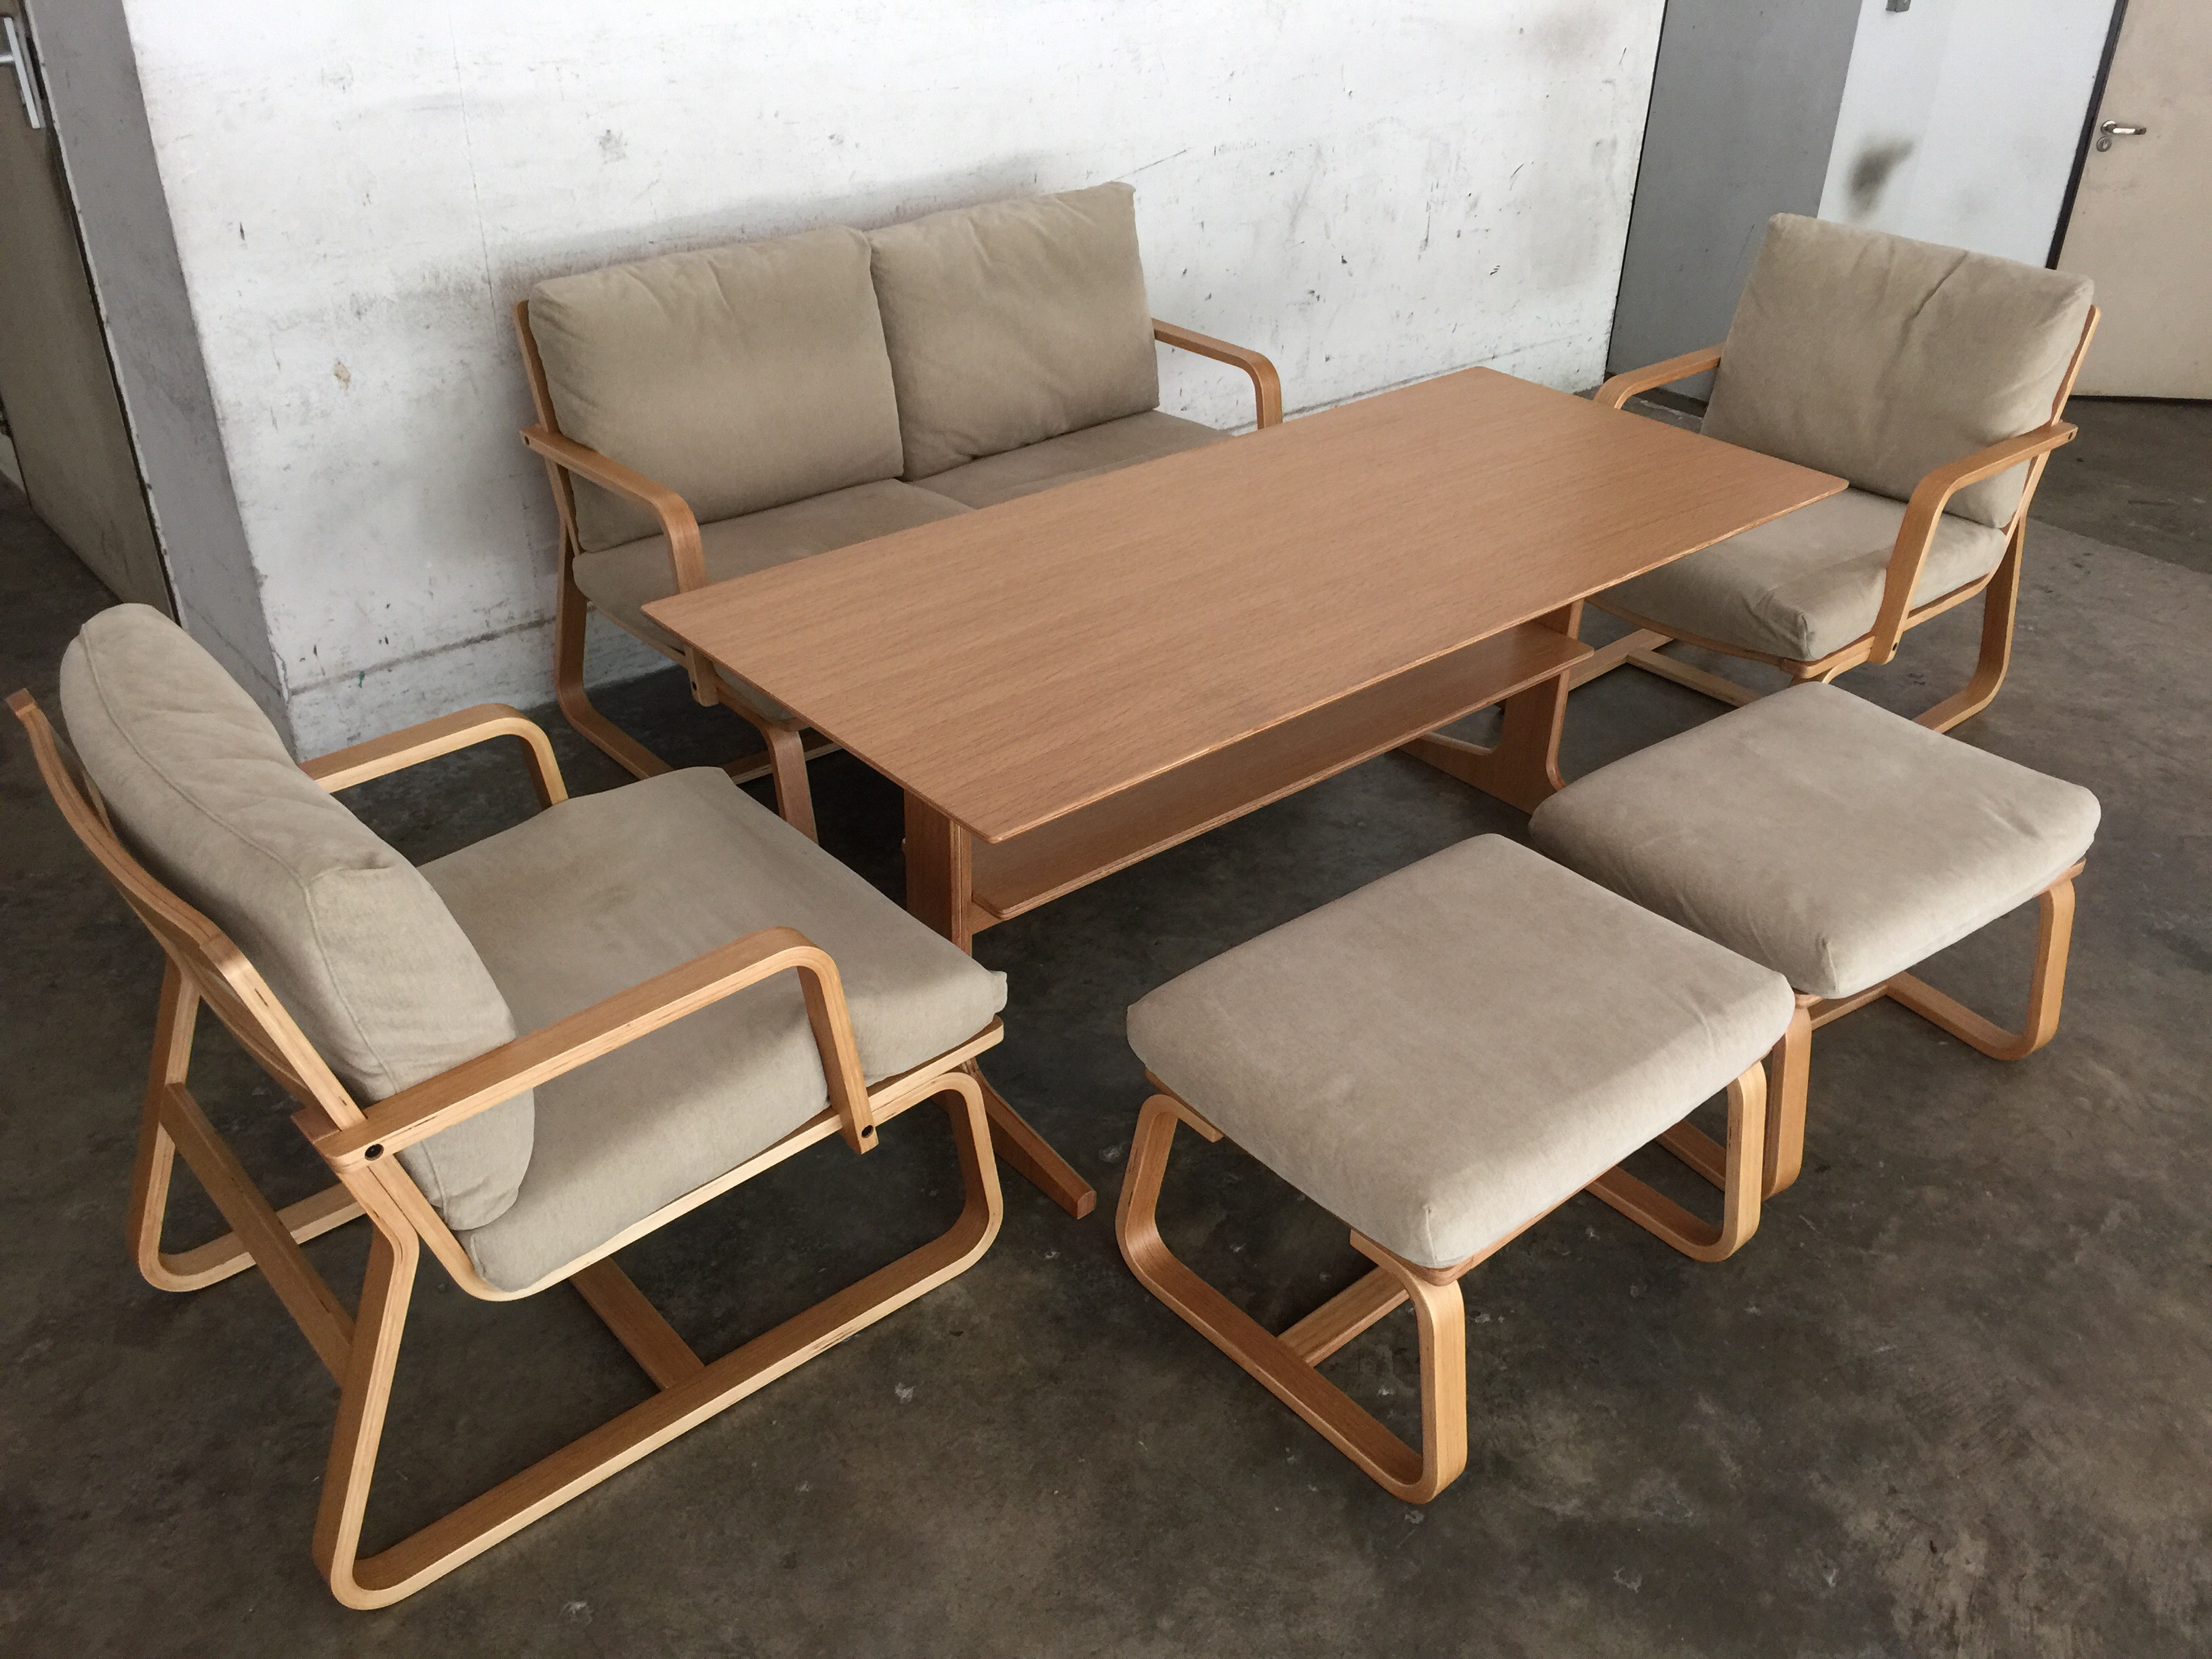 Japanese style dining living set henry furnishing